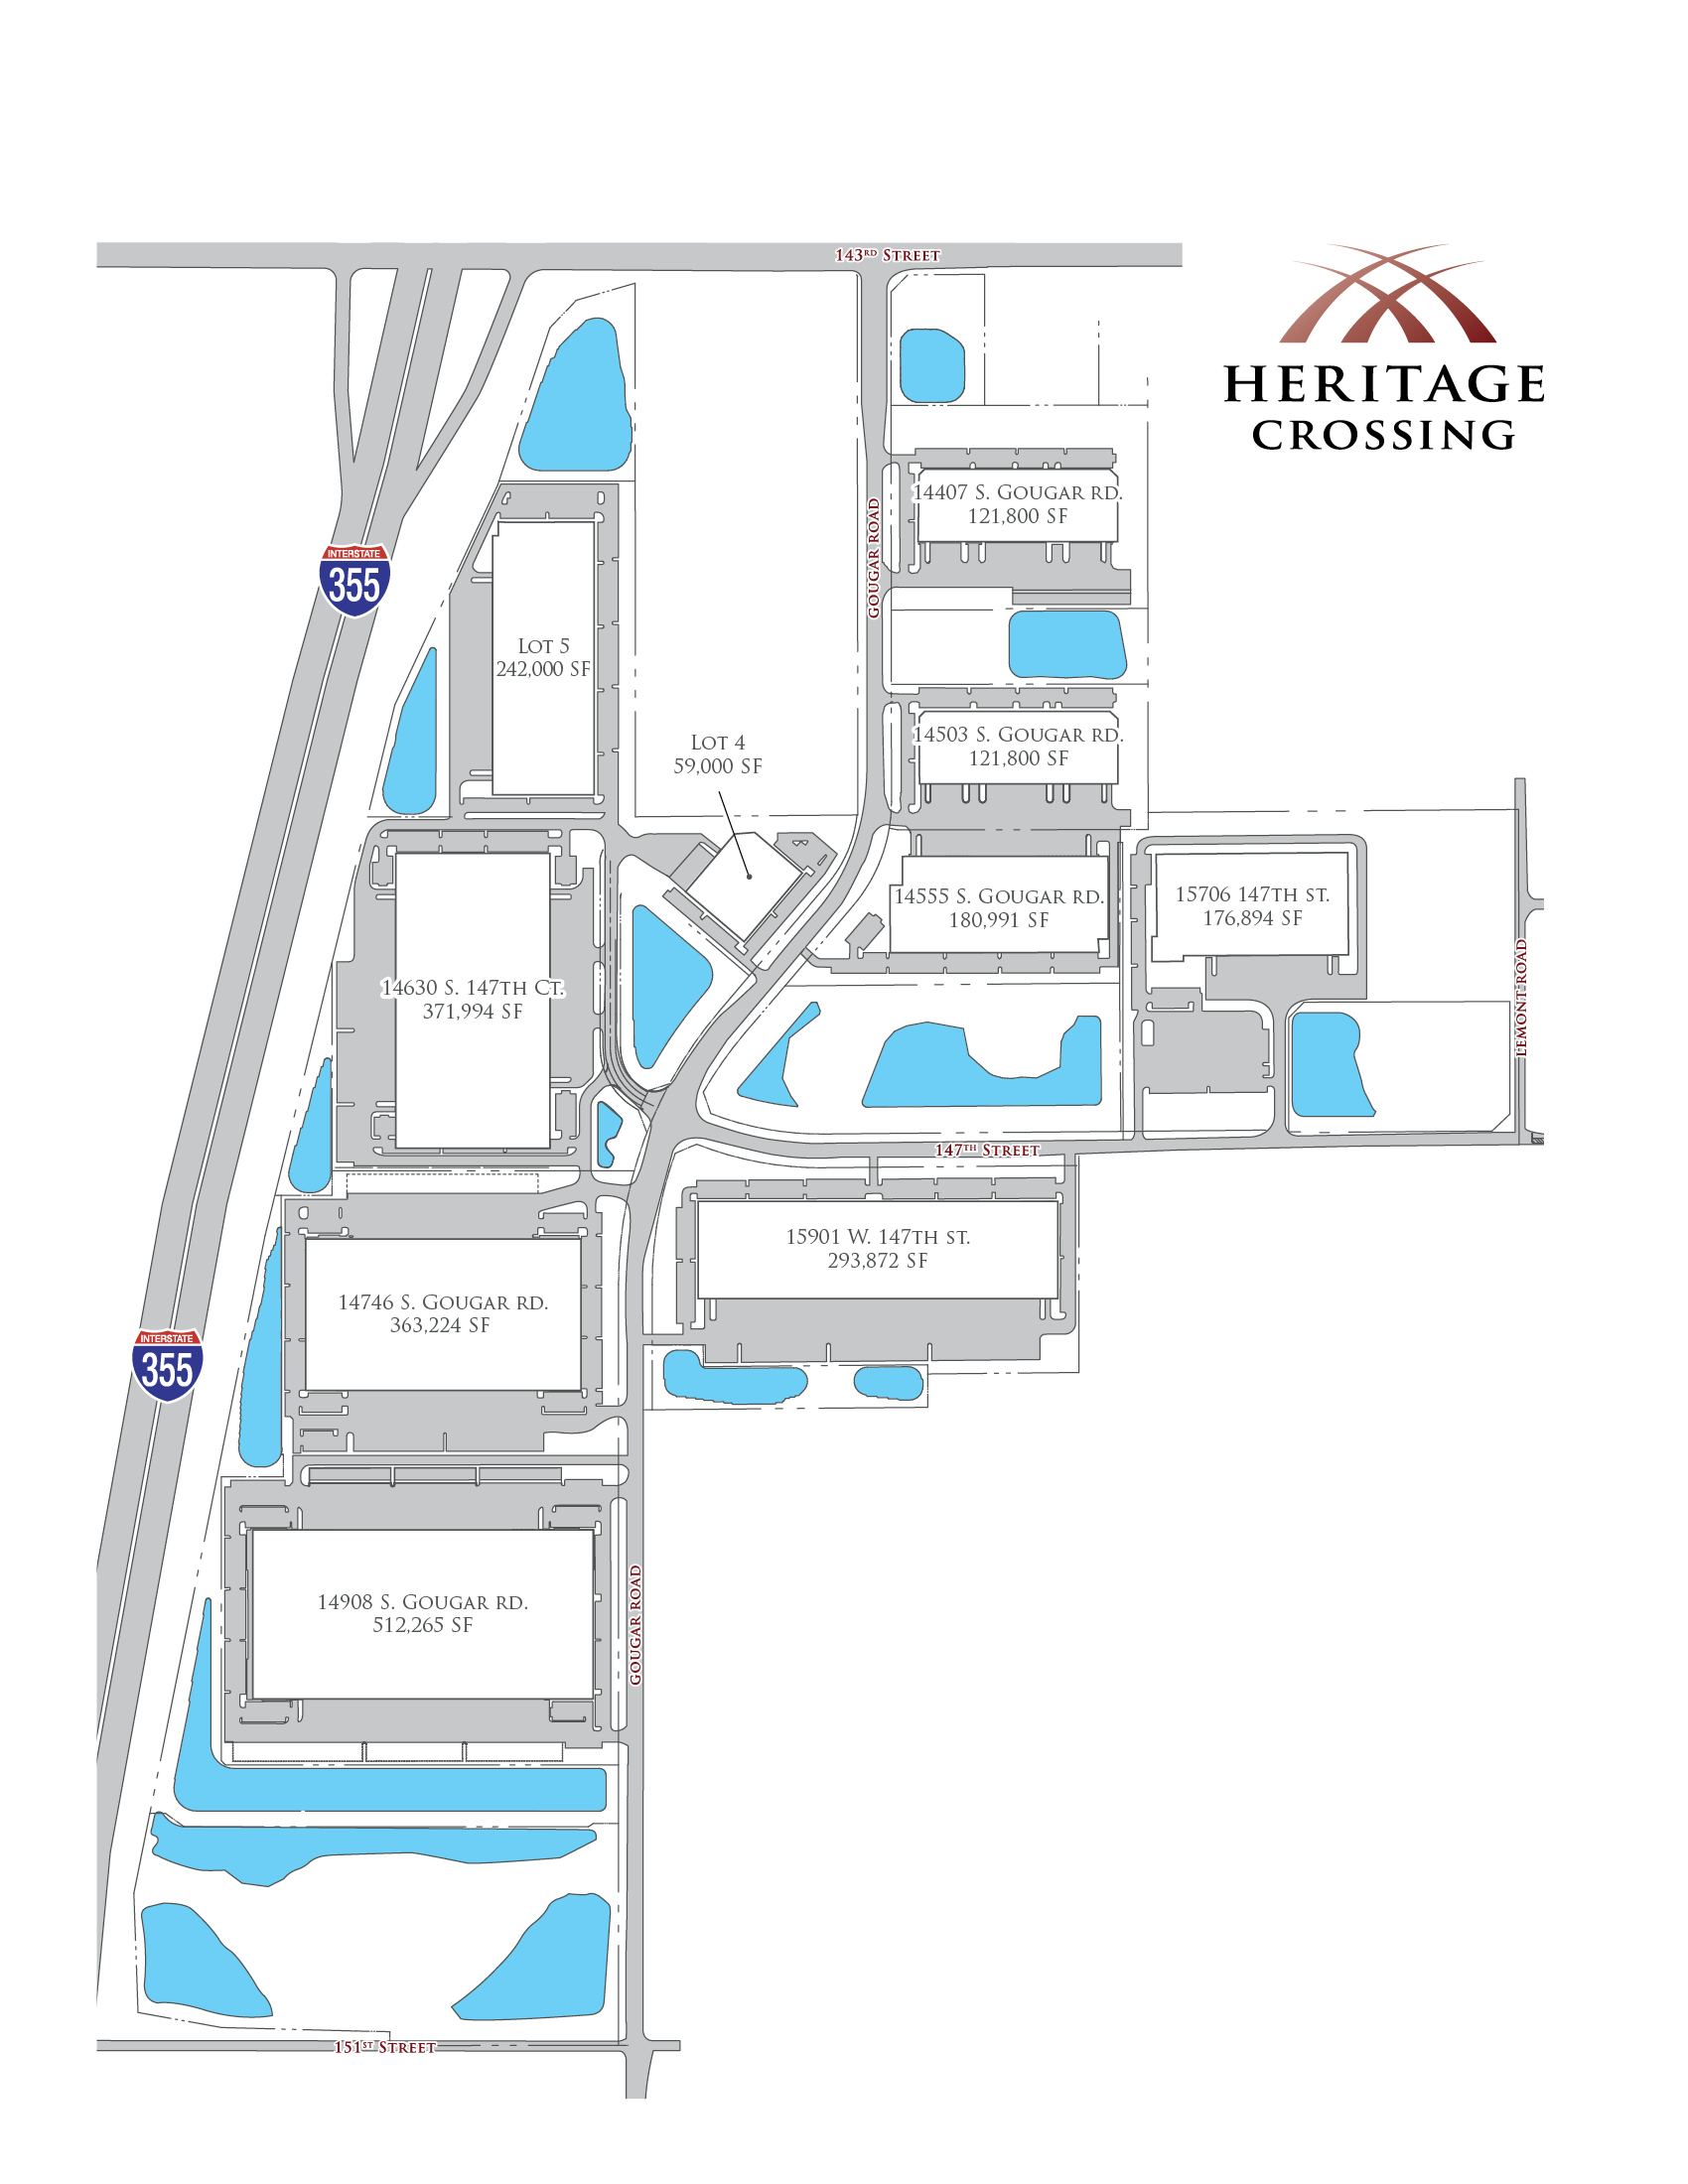 Illustrated master plan of the Heritage Crossing campus